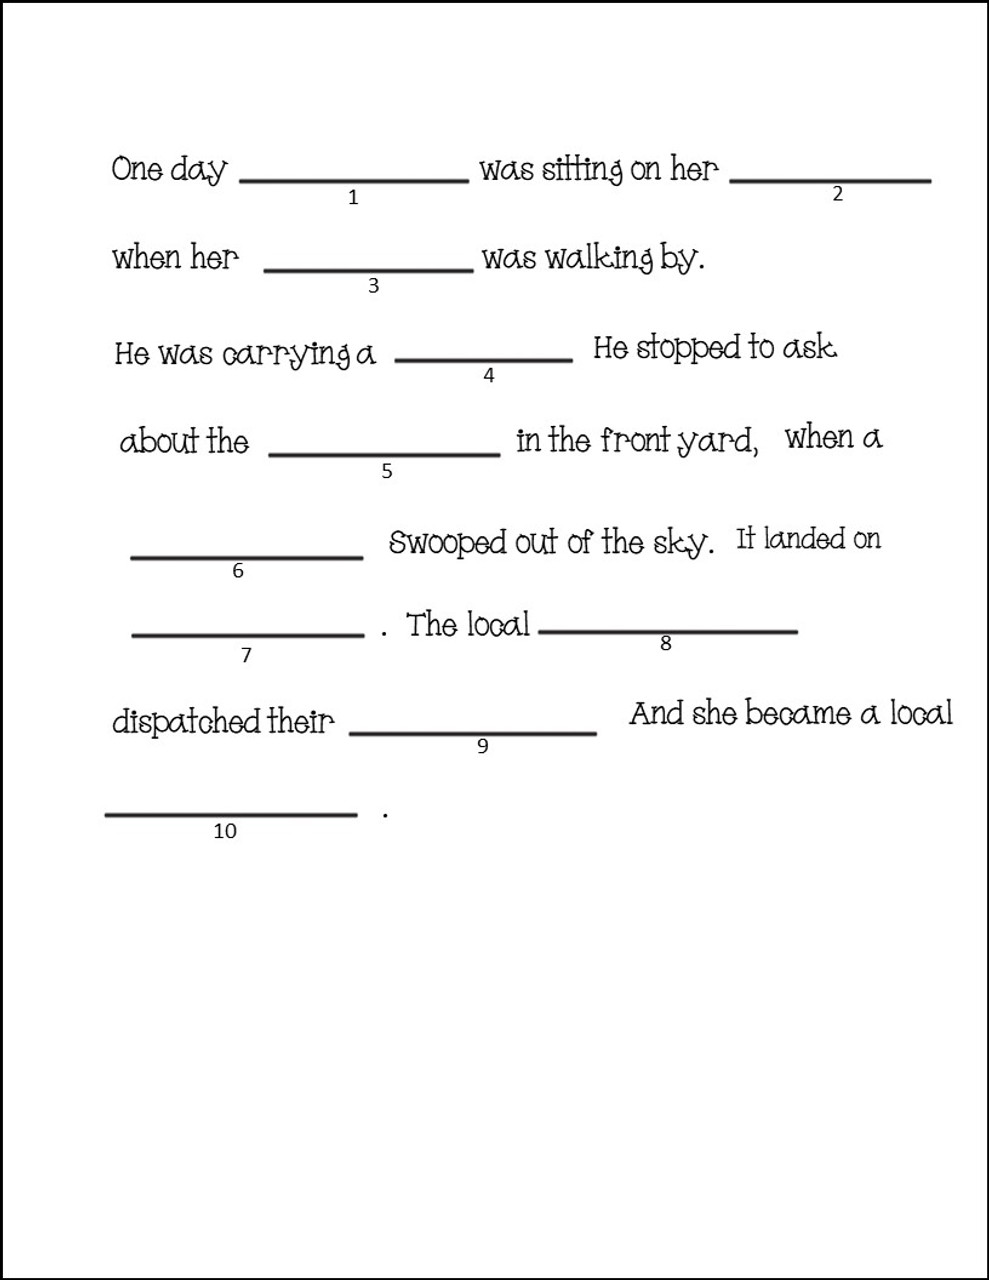 Order of Operations Silly Sentences Activity